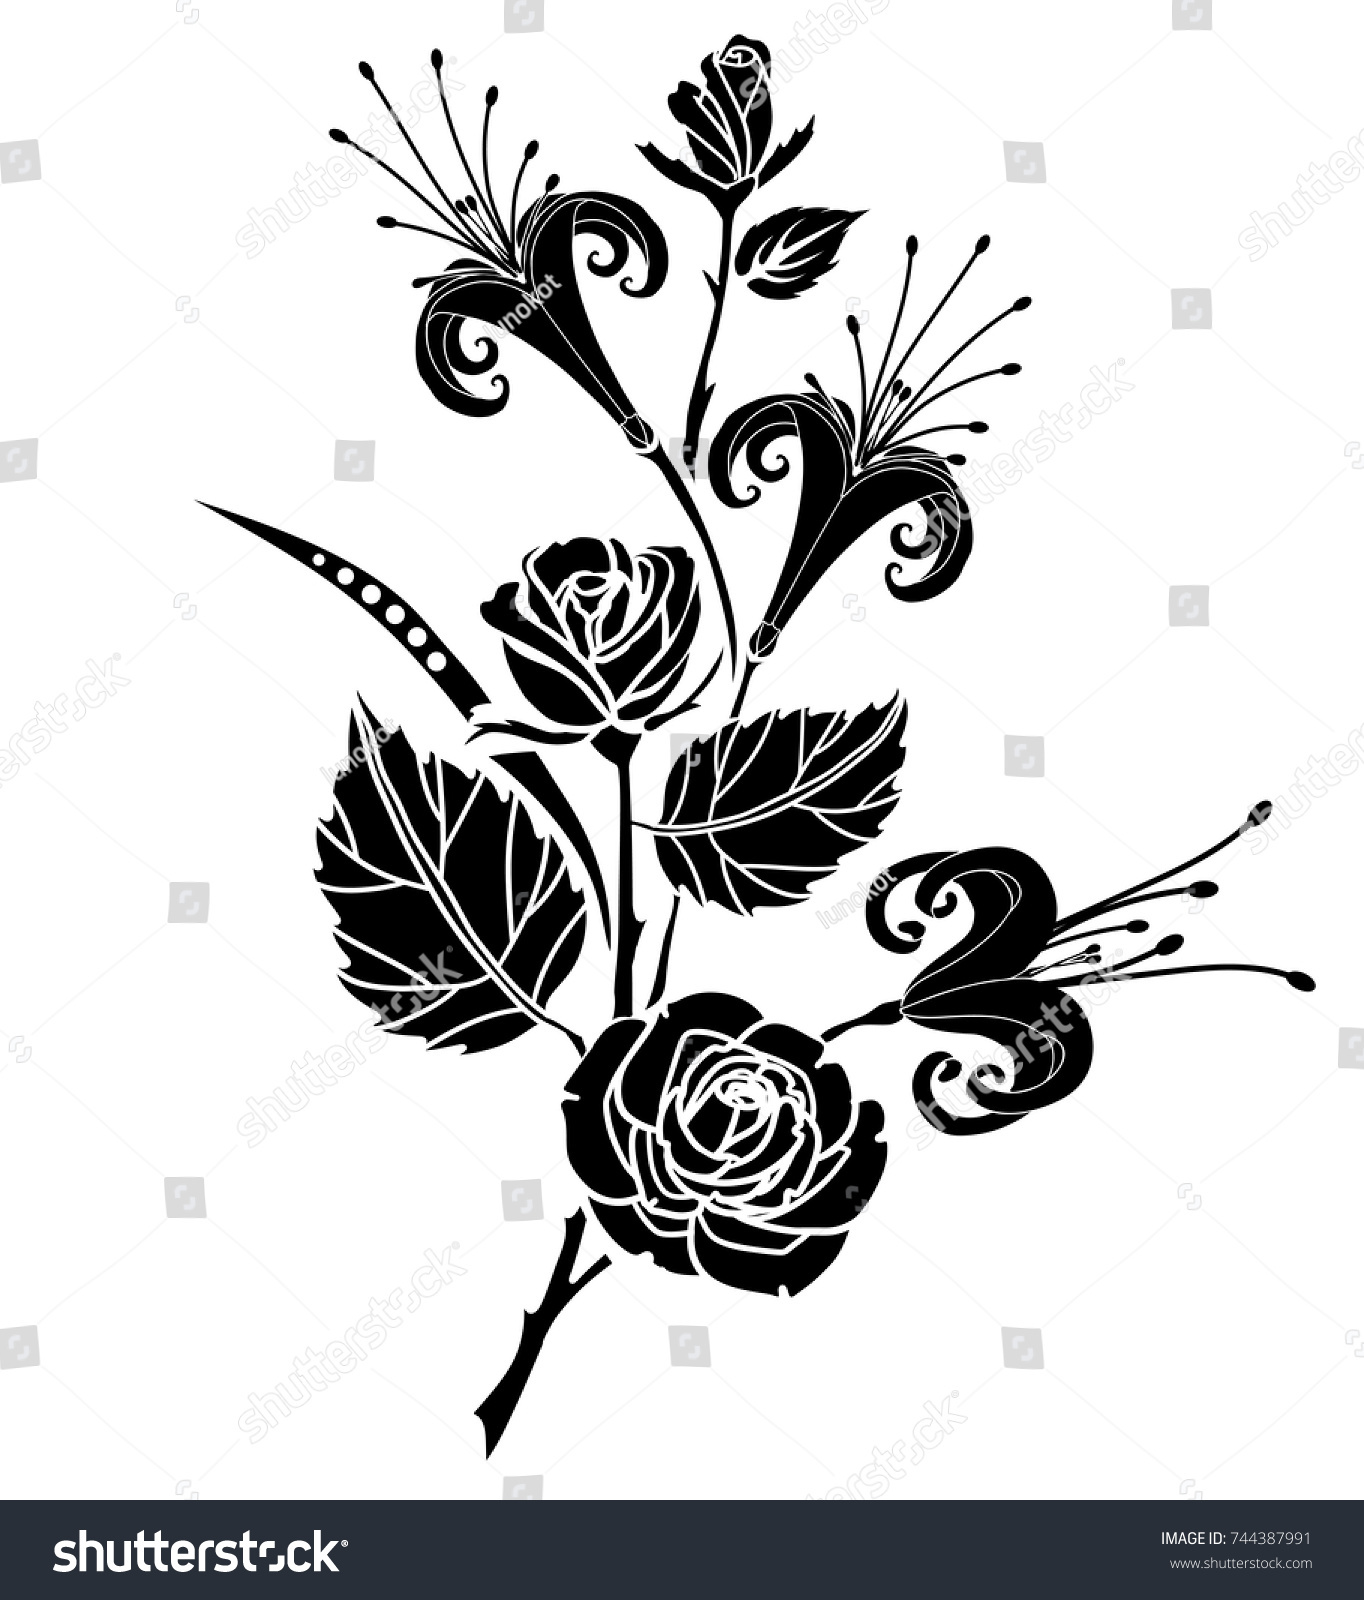 Lily rose tattoo silhouette lily flowers stock vector 744387991 lily and rose tattoo silhouette of lily flowers and leaves on a white background izmirmasajfo